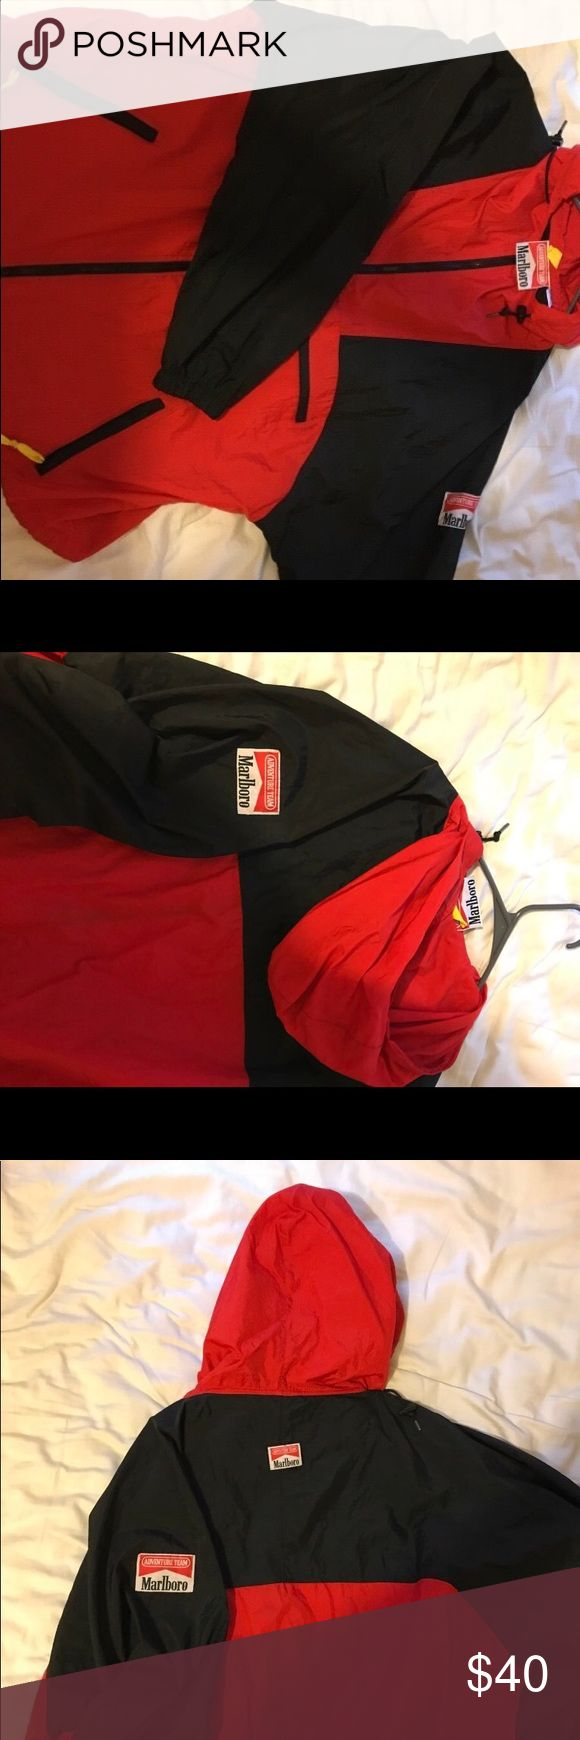 Vintage Marlboro Adventure Team windbreaker Vintage Marlboro windbreaker marlboro Jackets & Coats Windbreakers